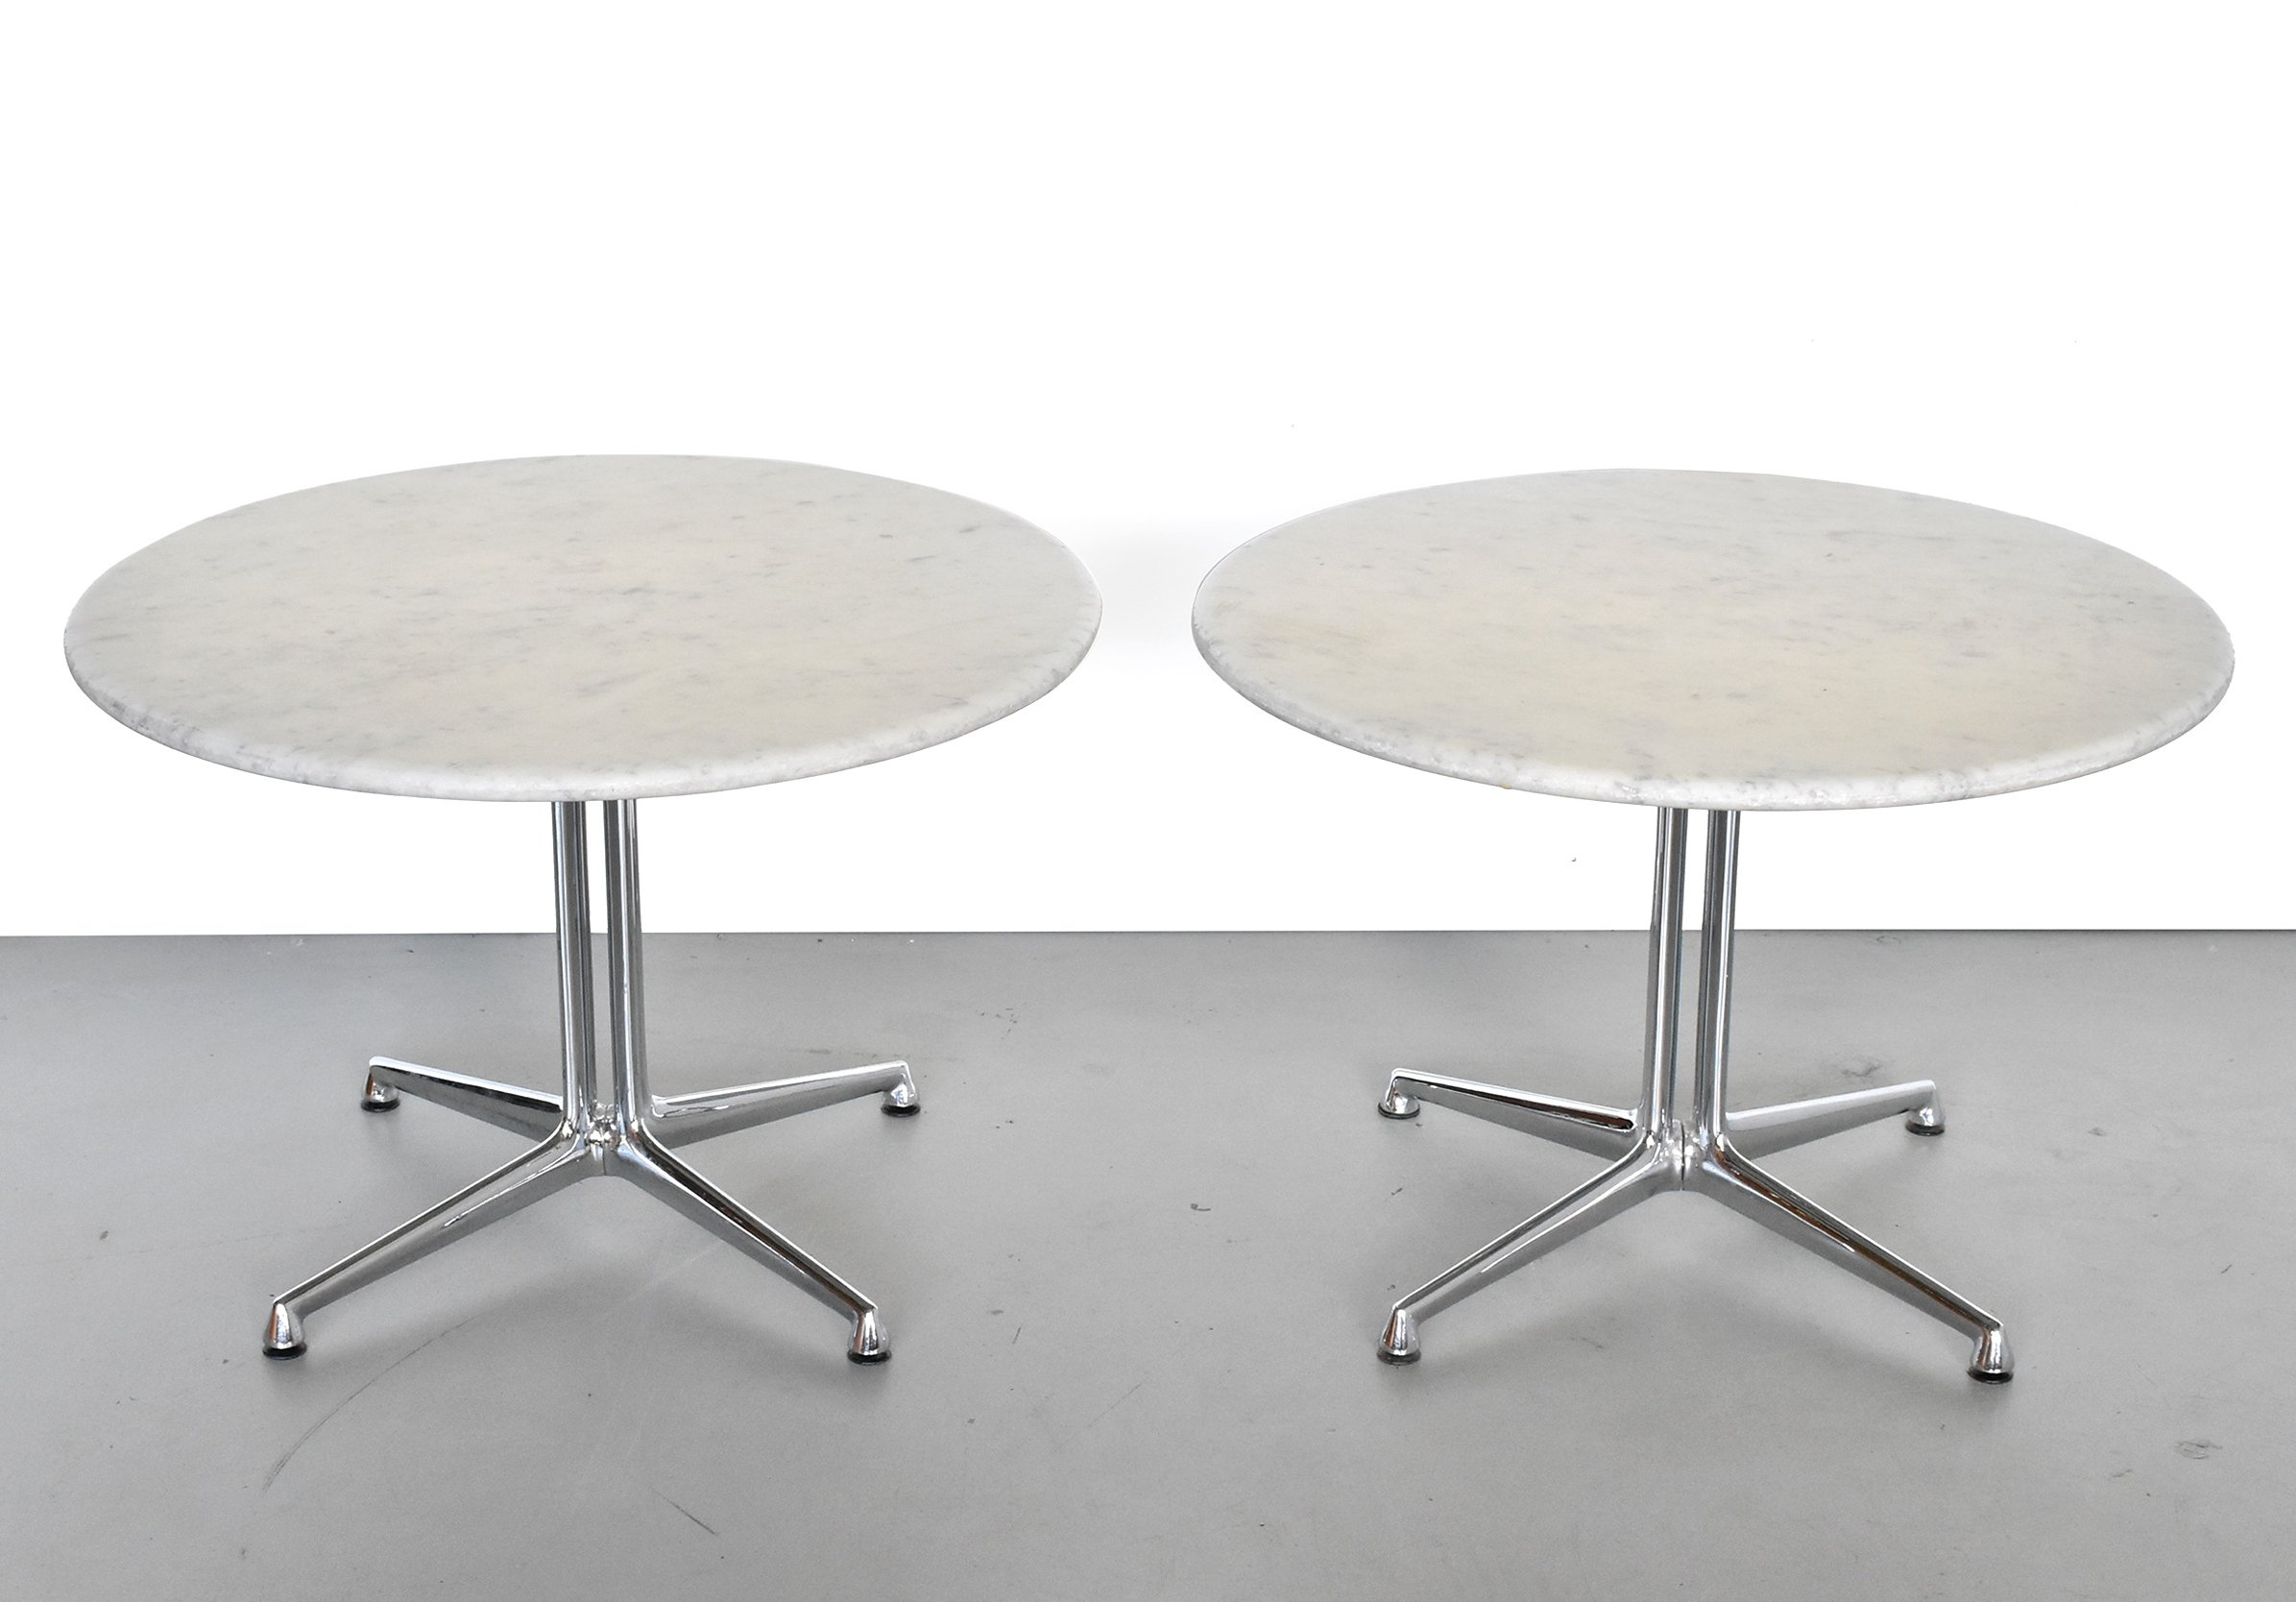 Pair of La fonda side tables by Charles & Ray Eames for Herman Miller, 1960s